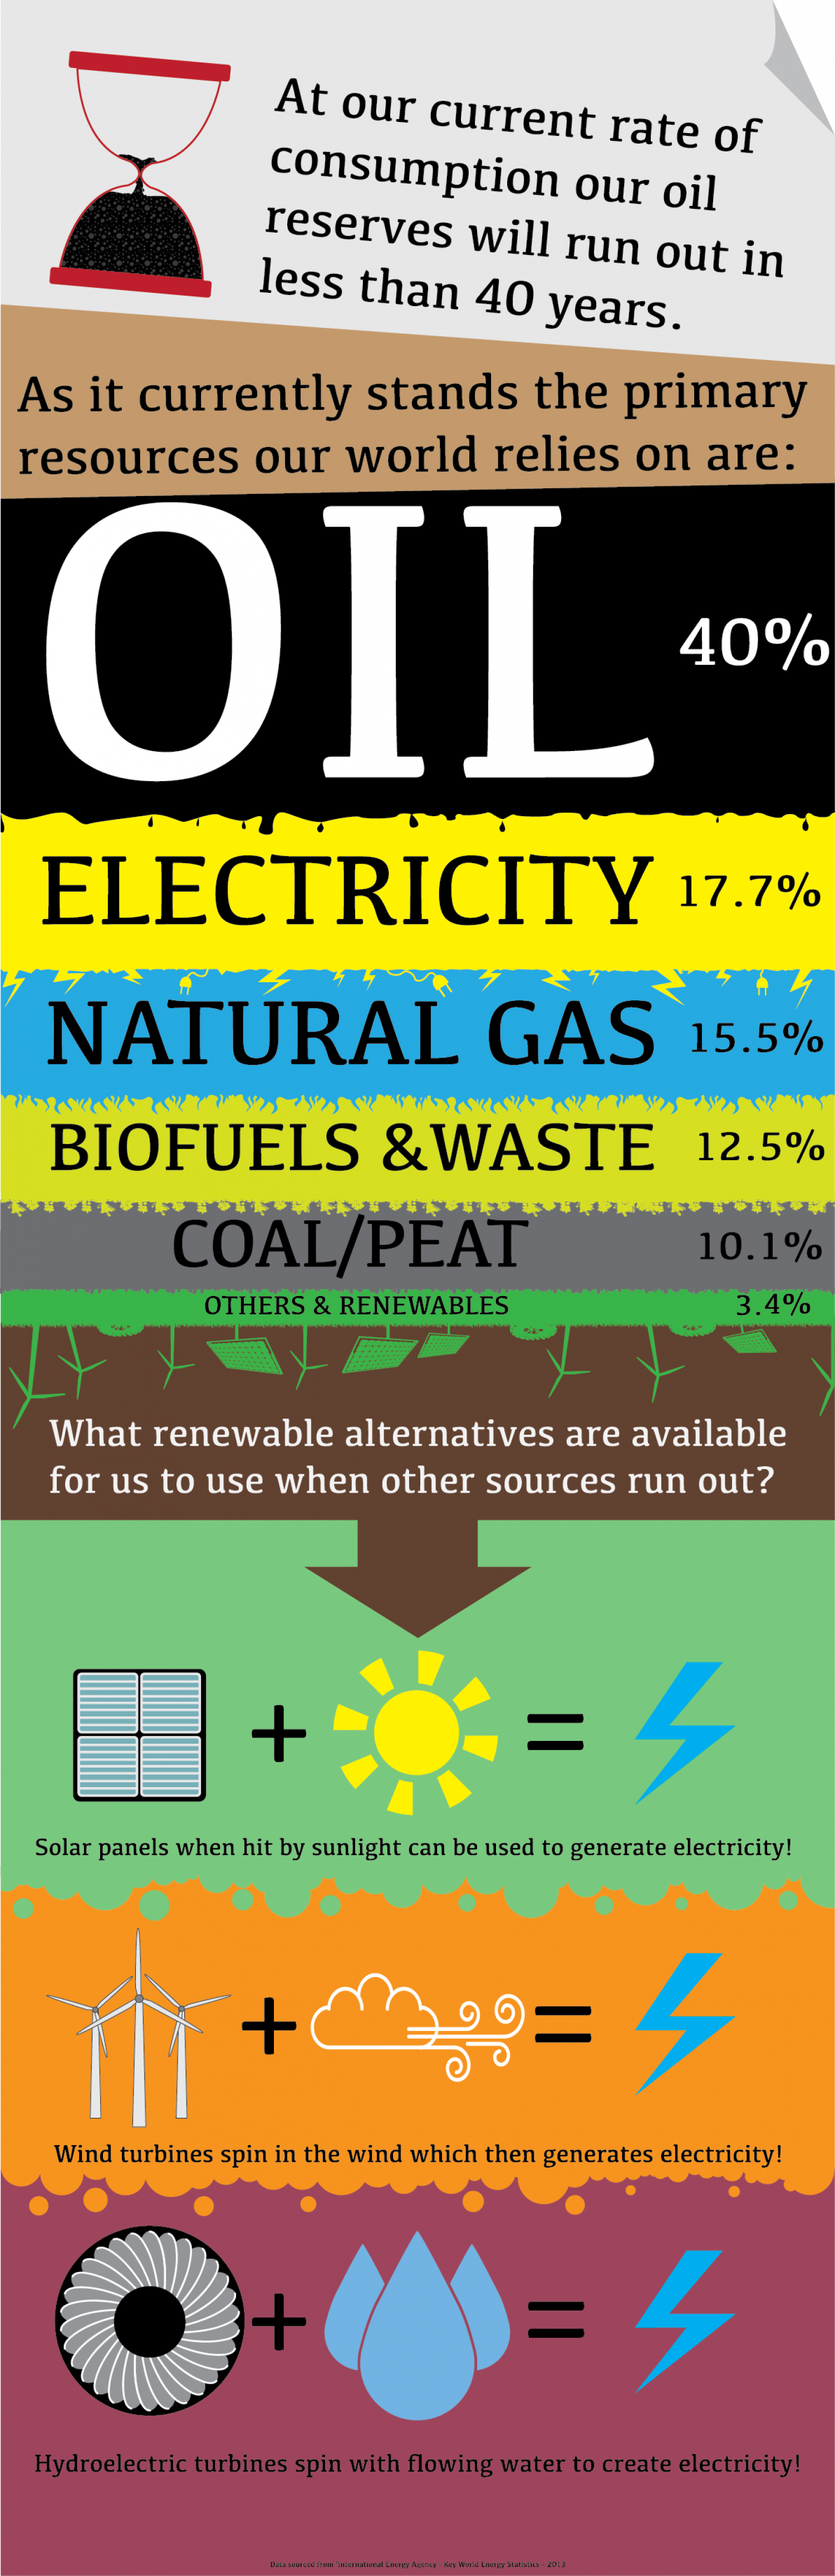 Resources and Renewables Infographic